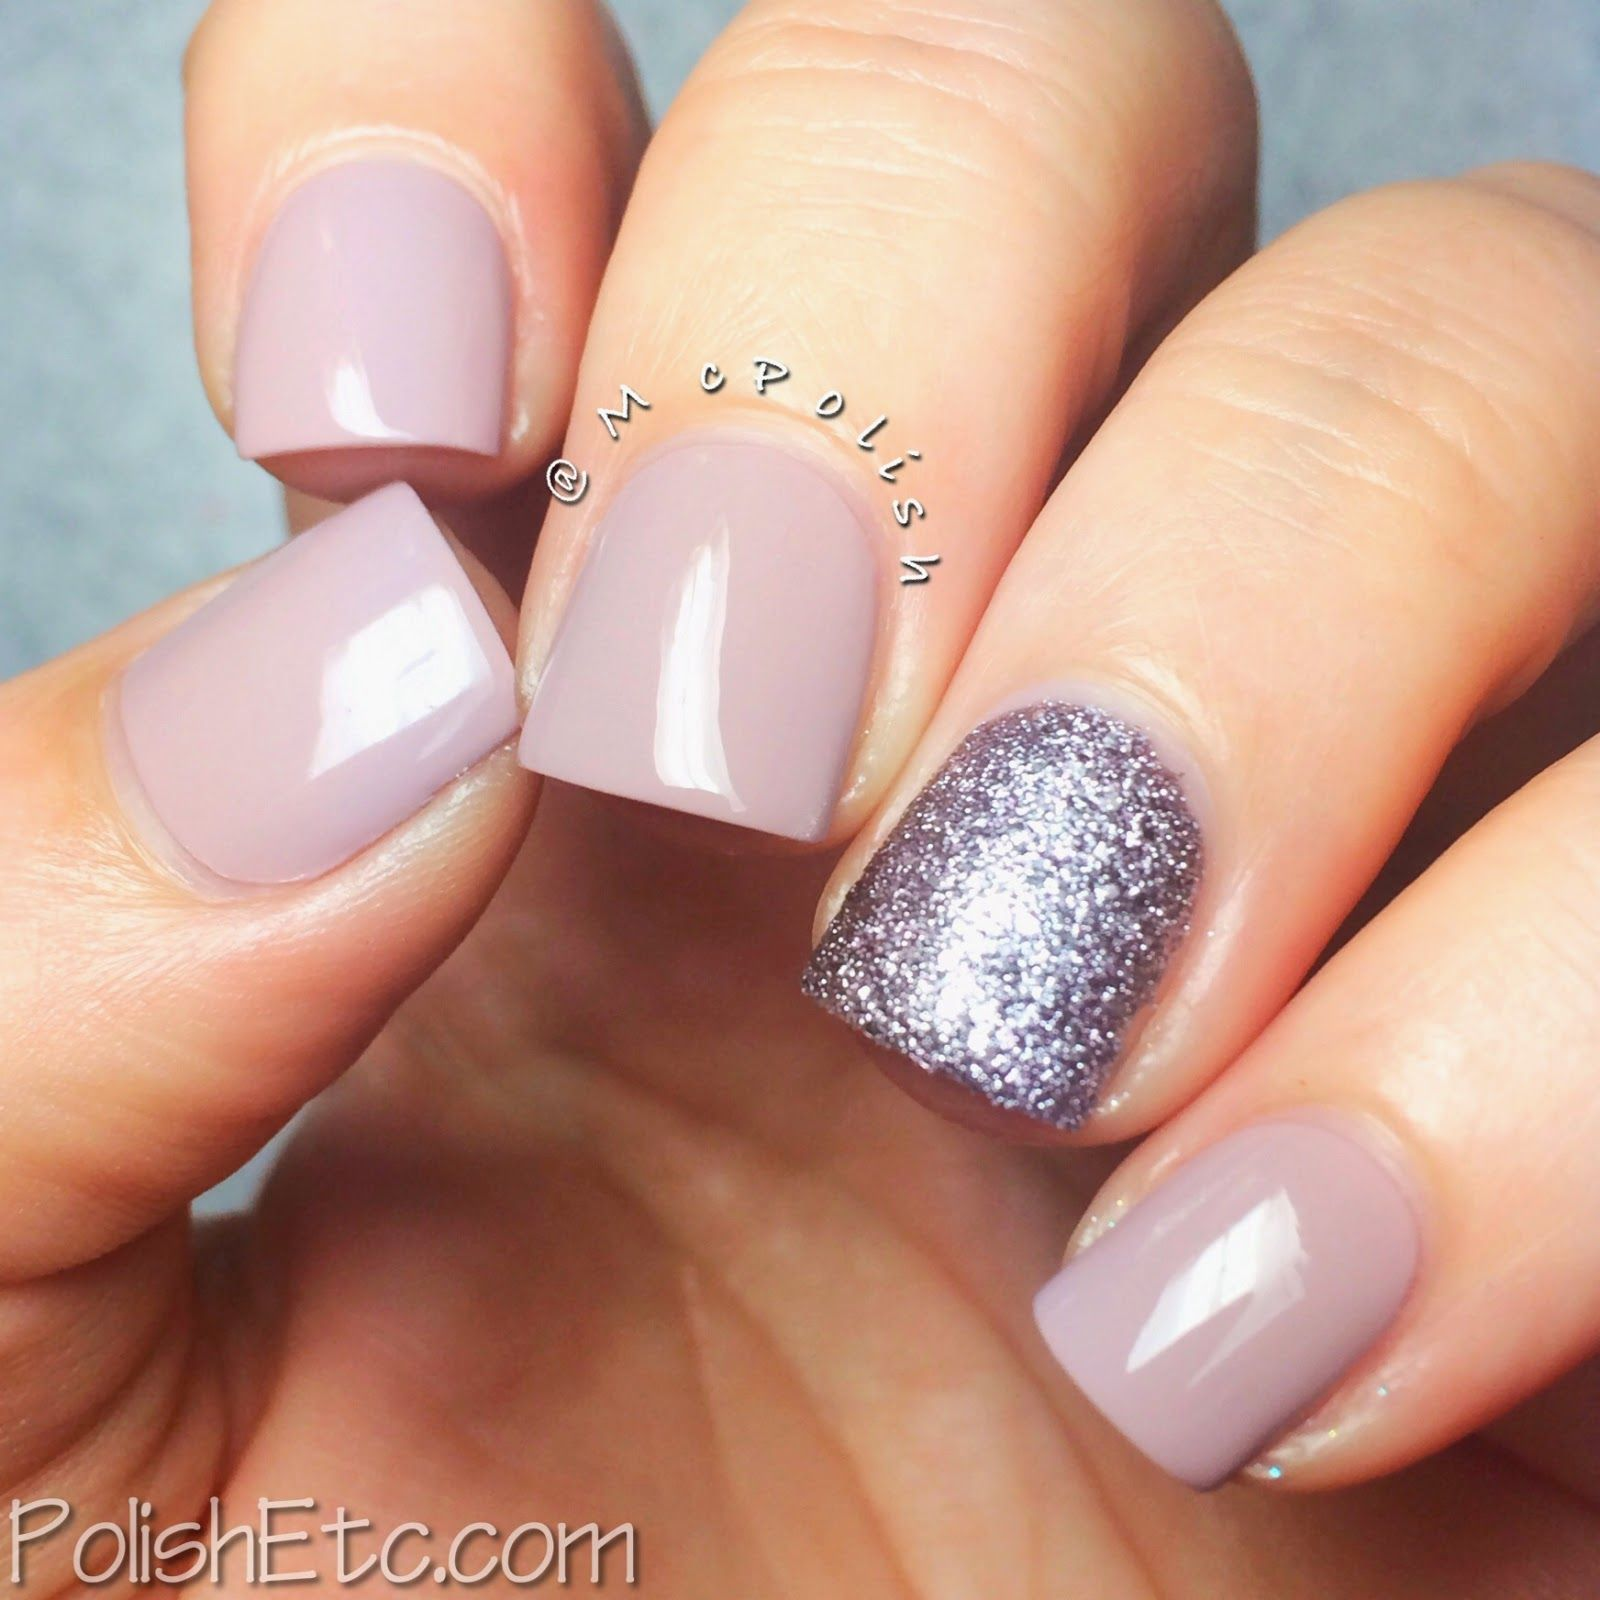 Coffin nails in 2020 | Sns nails colors, Sns nails designs